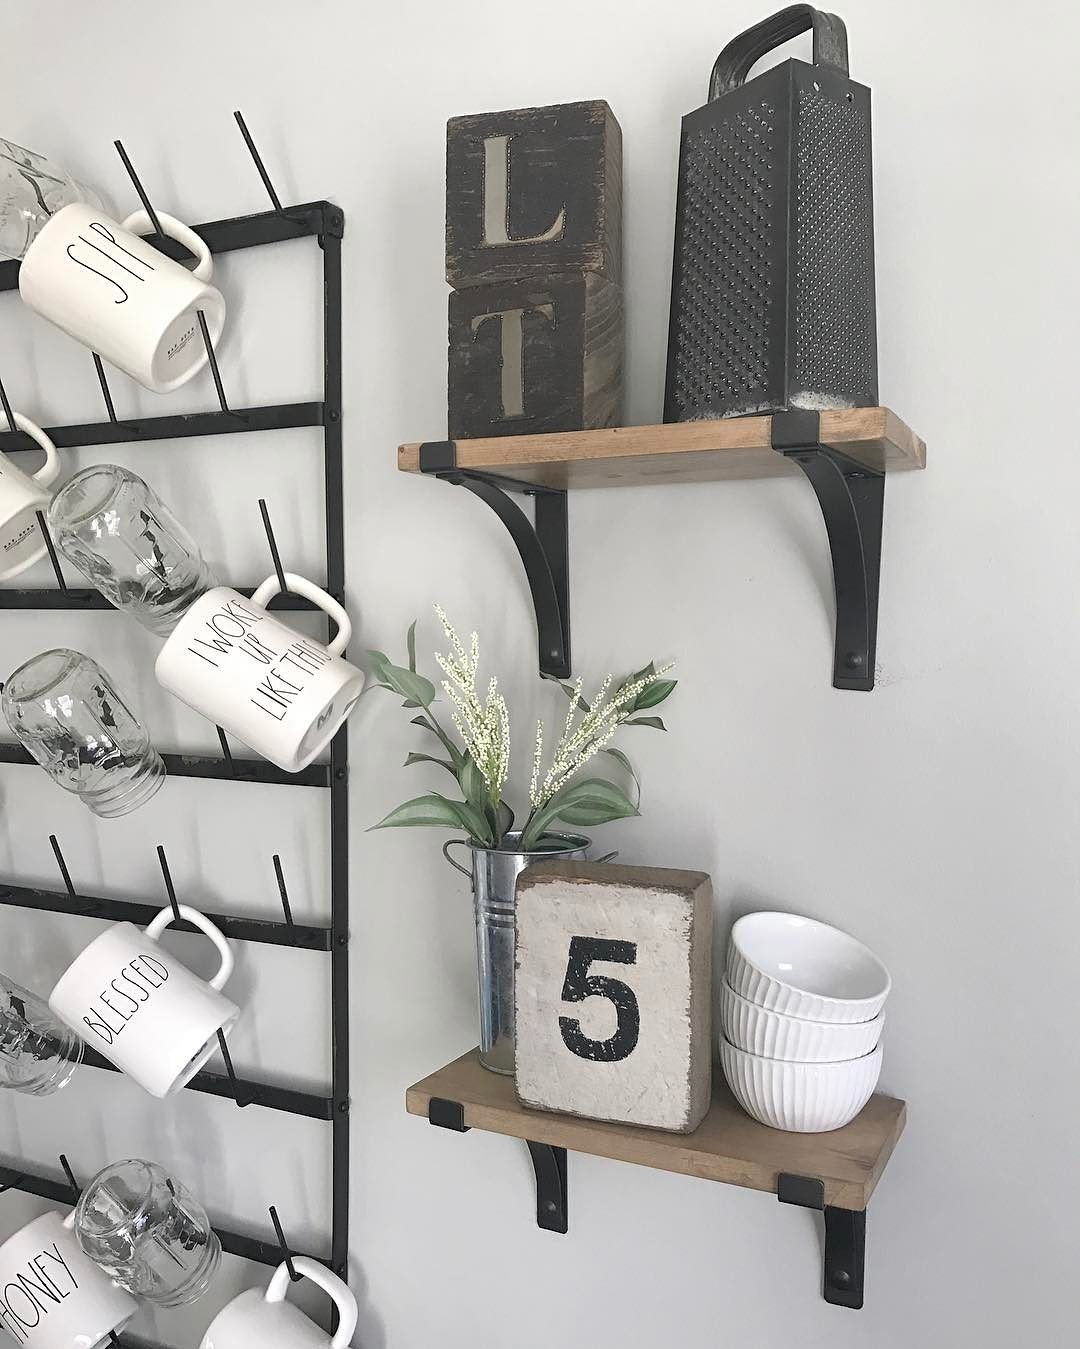 real wood floating shelf threshold target finds btl shelves lisa marie decorative fireplace mantels cool brackets three wall canvas storage cubes best home fashion modern mounted